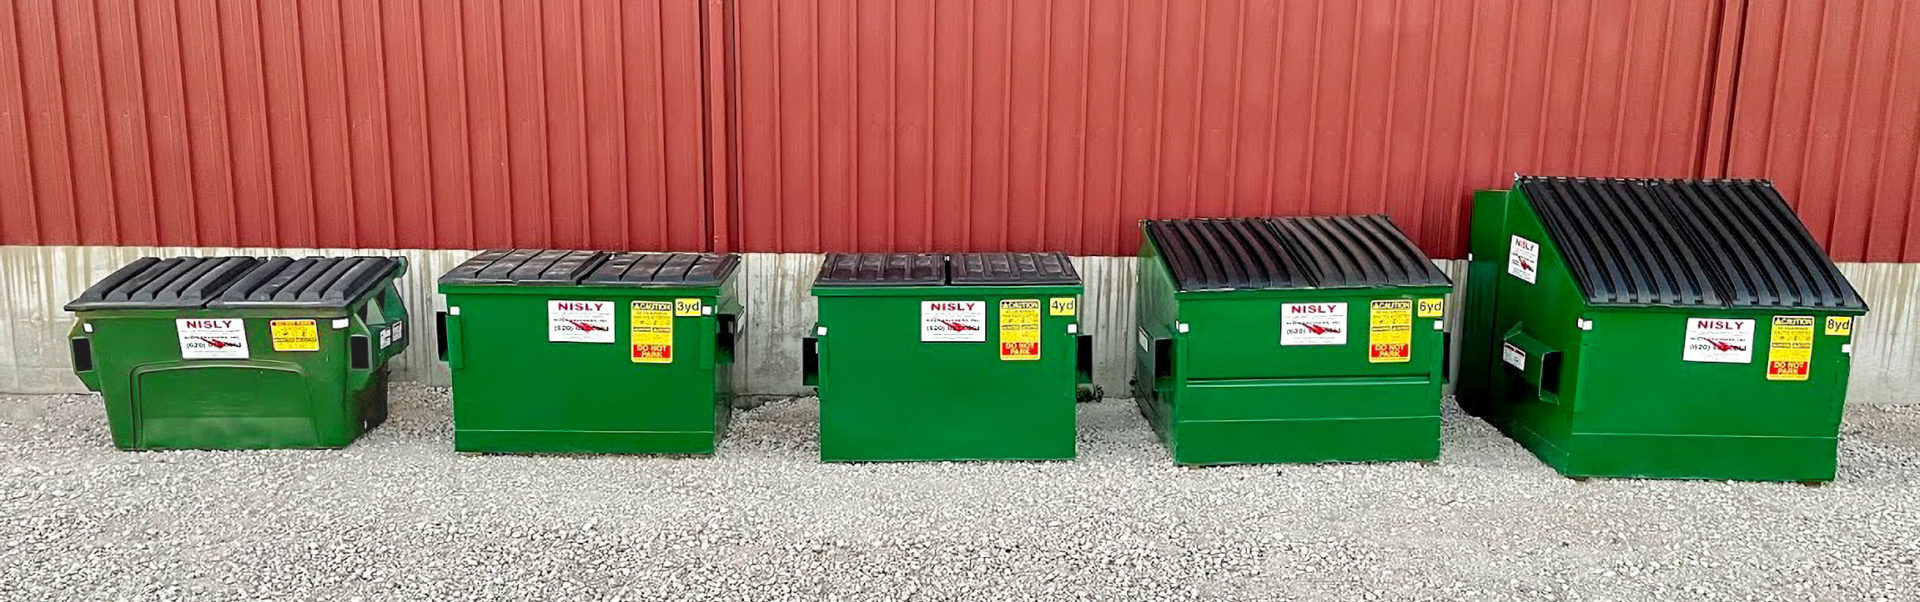 commercial trash service containers in edited